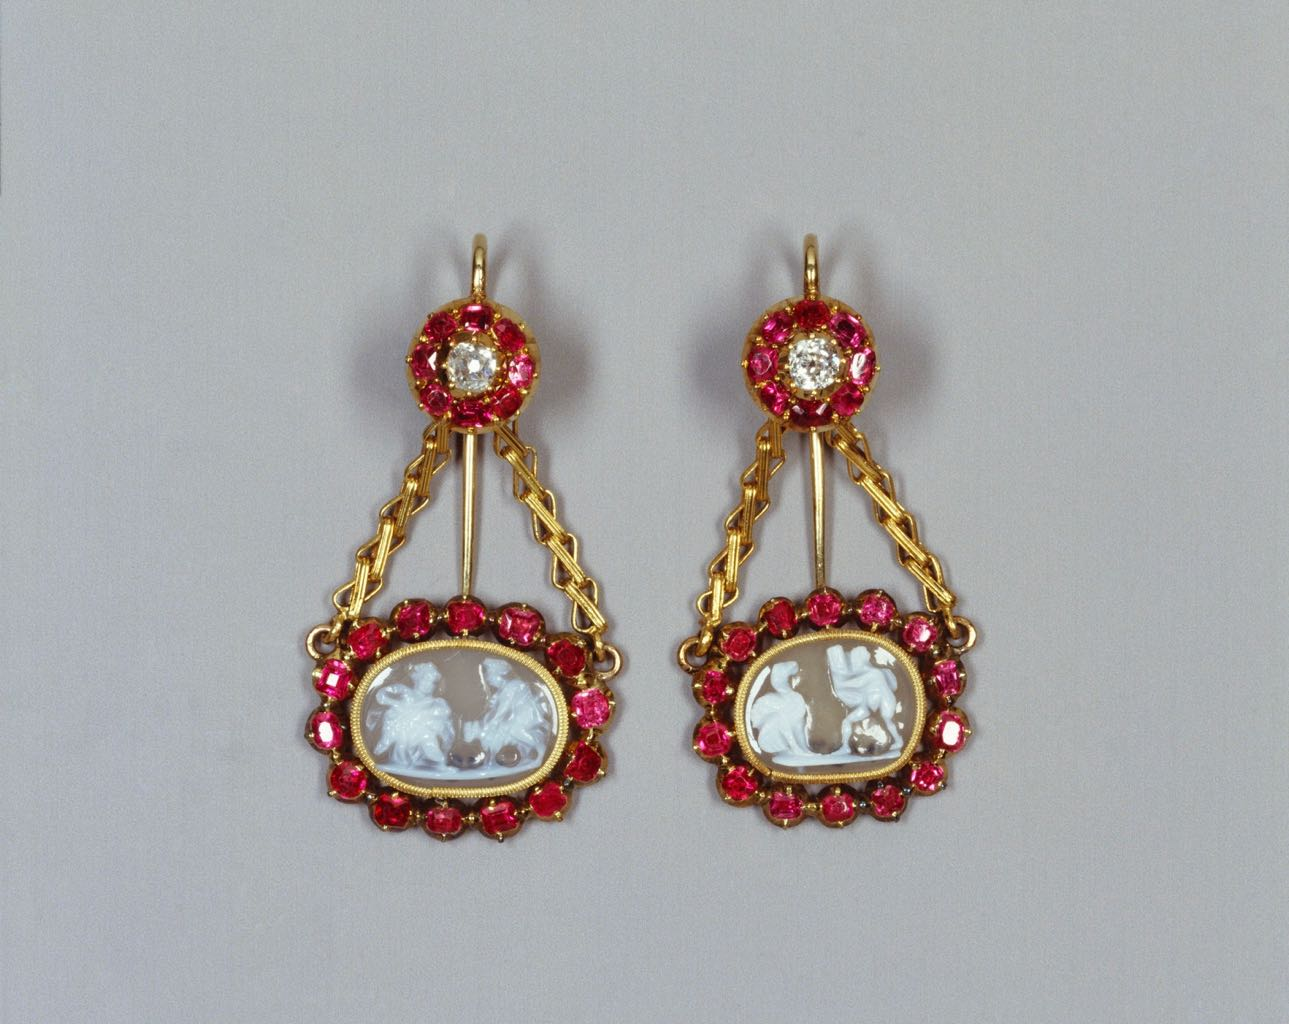 Burmese ruby and gold earring early-late 19th century earrings set with cameos made in the 16th or 17th century. Photo © Royal Collection Trust